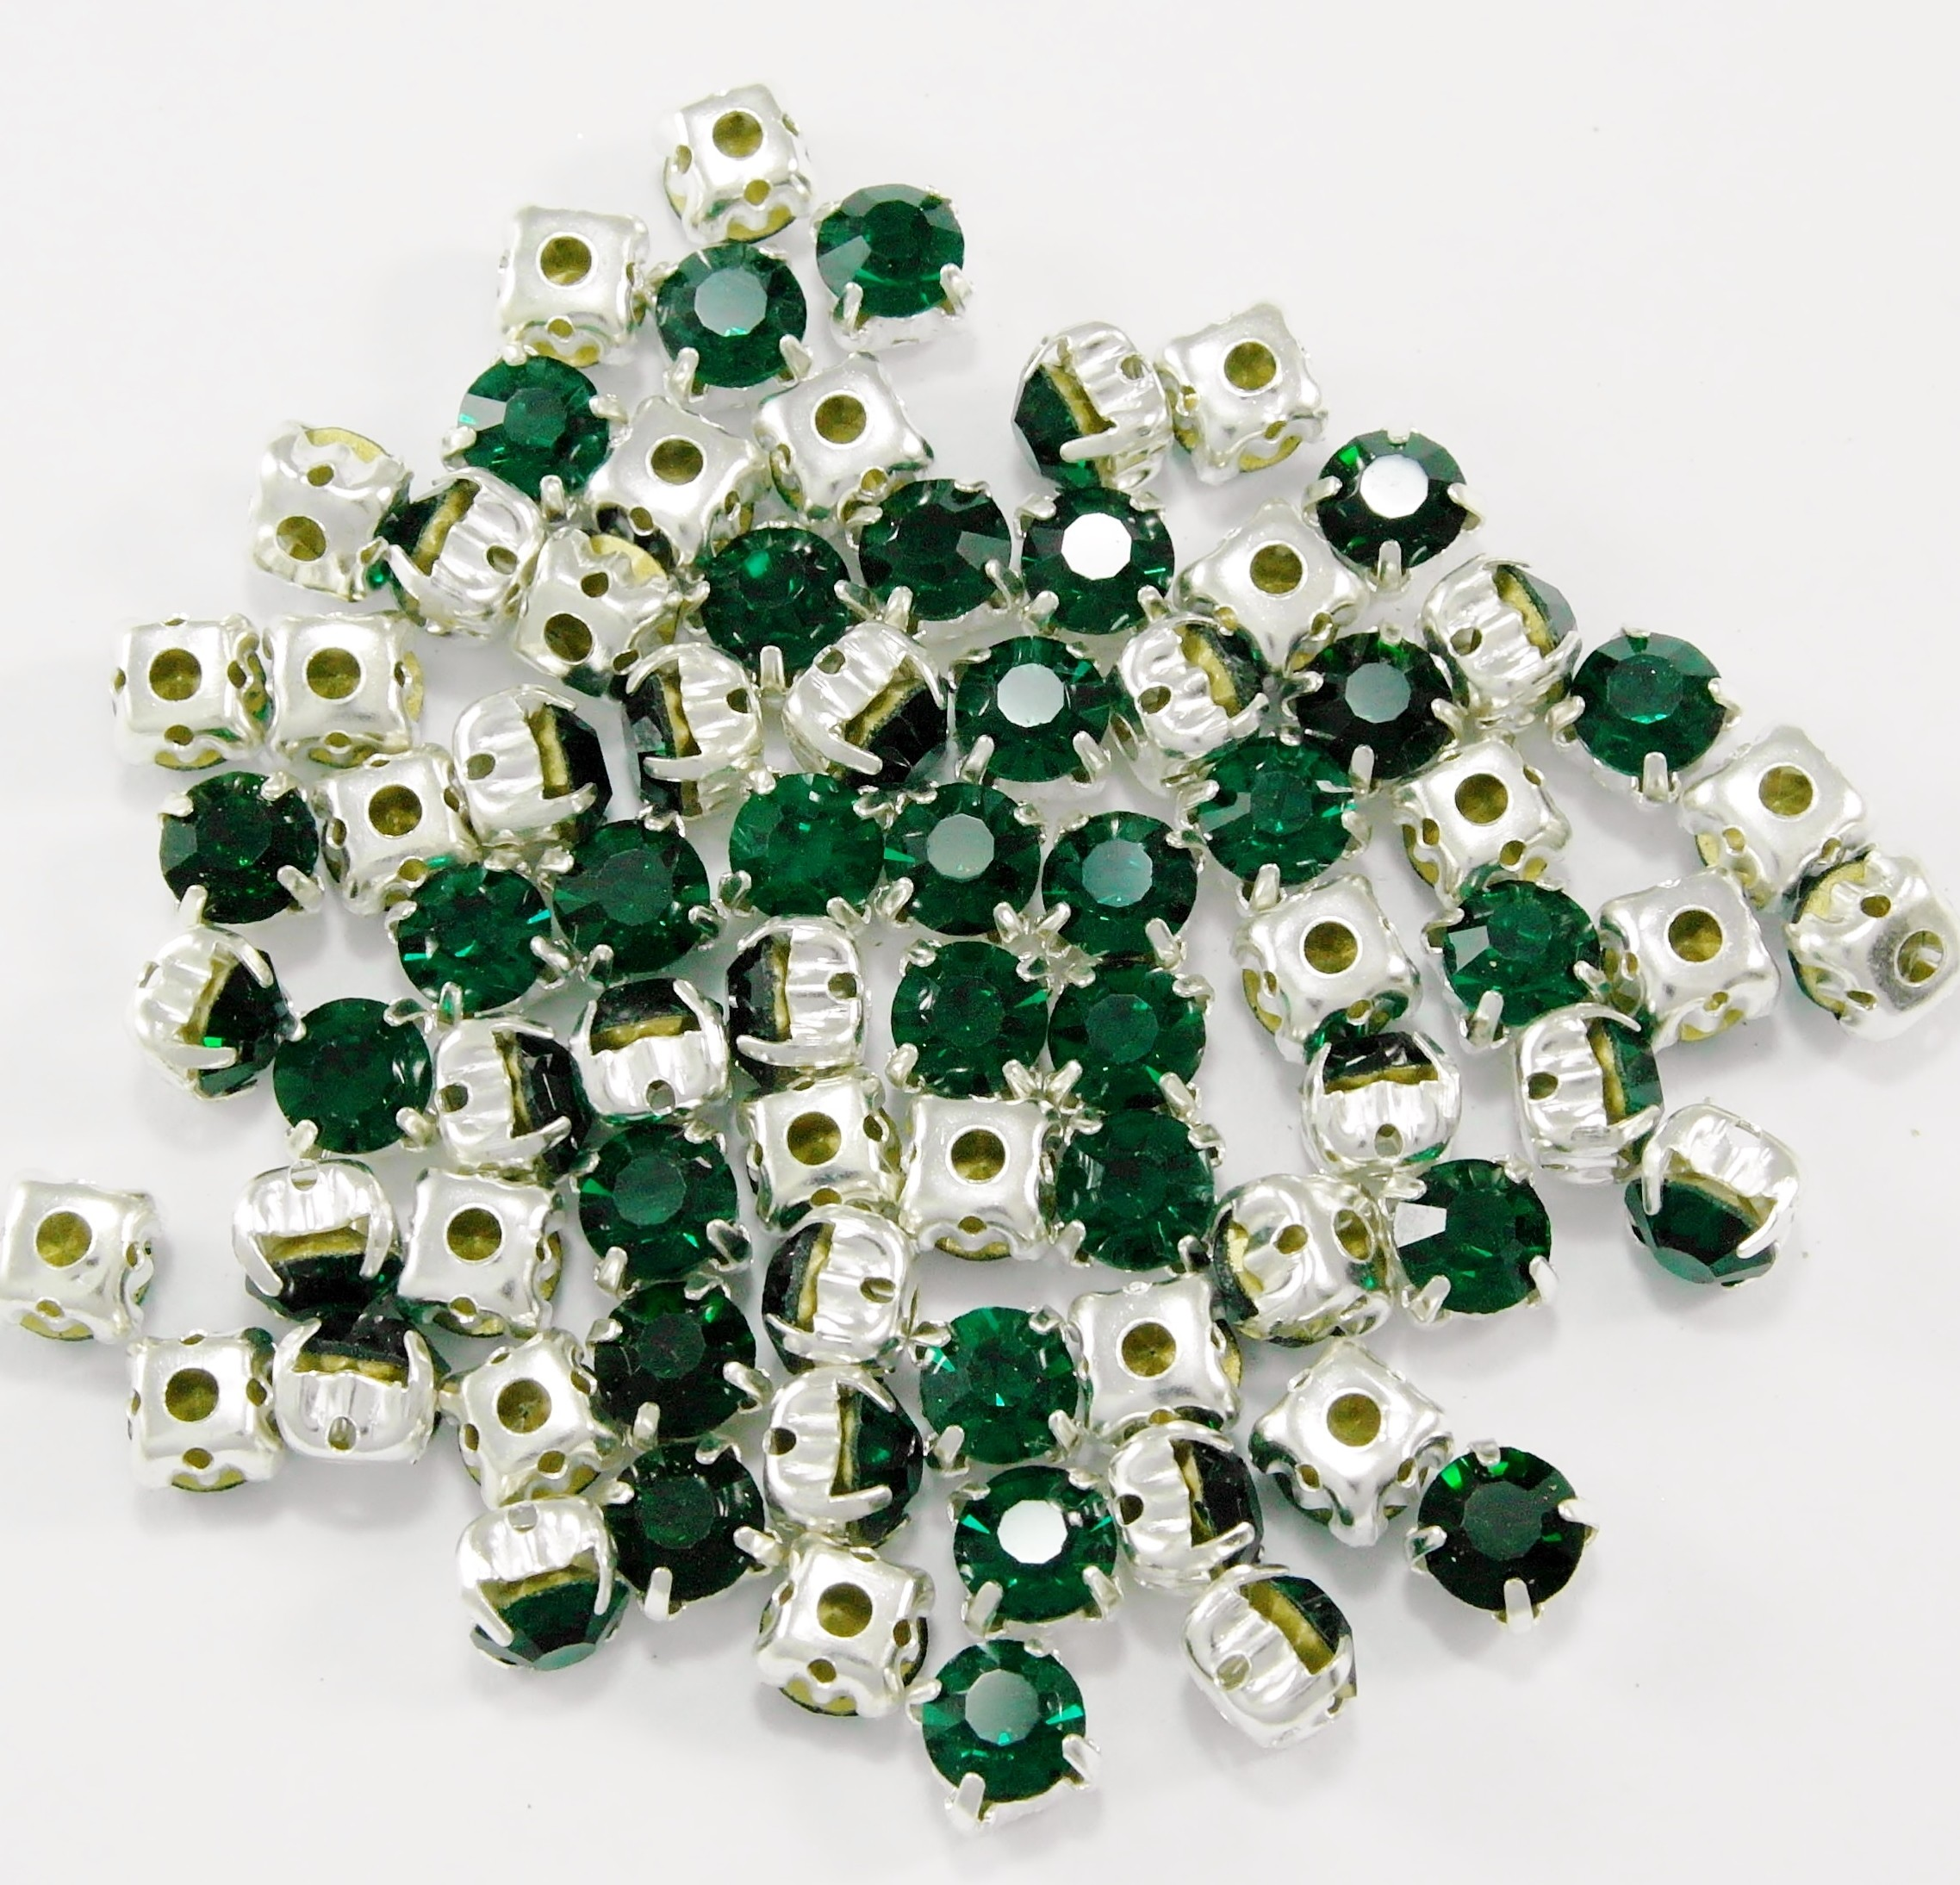 SS28 montees - Emerald B8  ( 200 pcs )